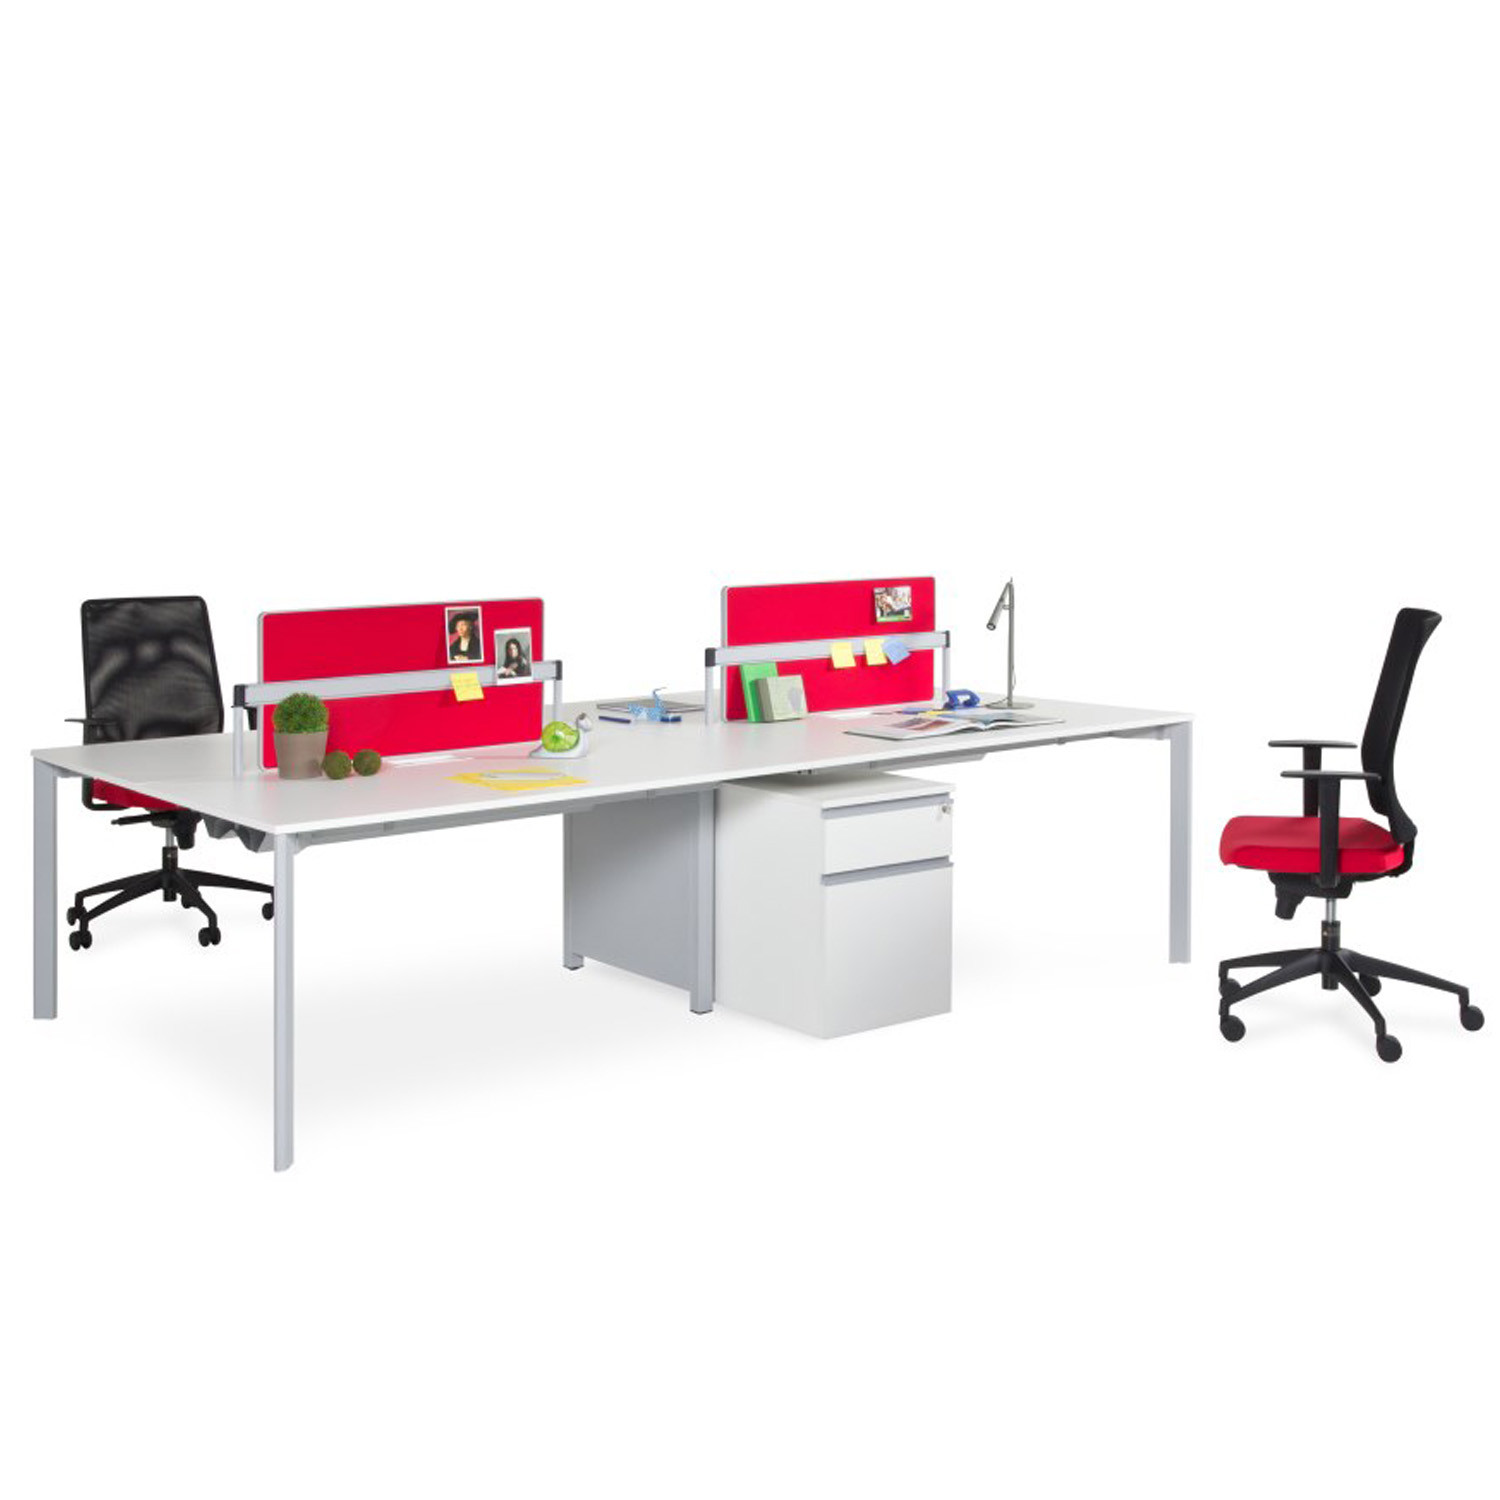 Lean Office Bench Desks